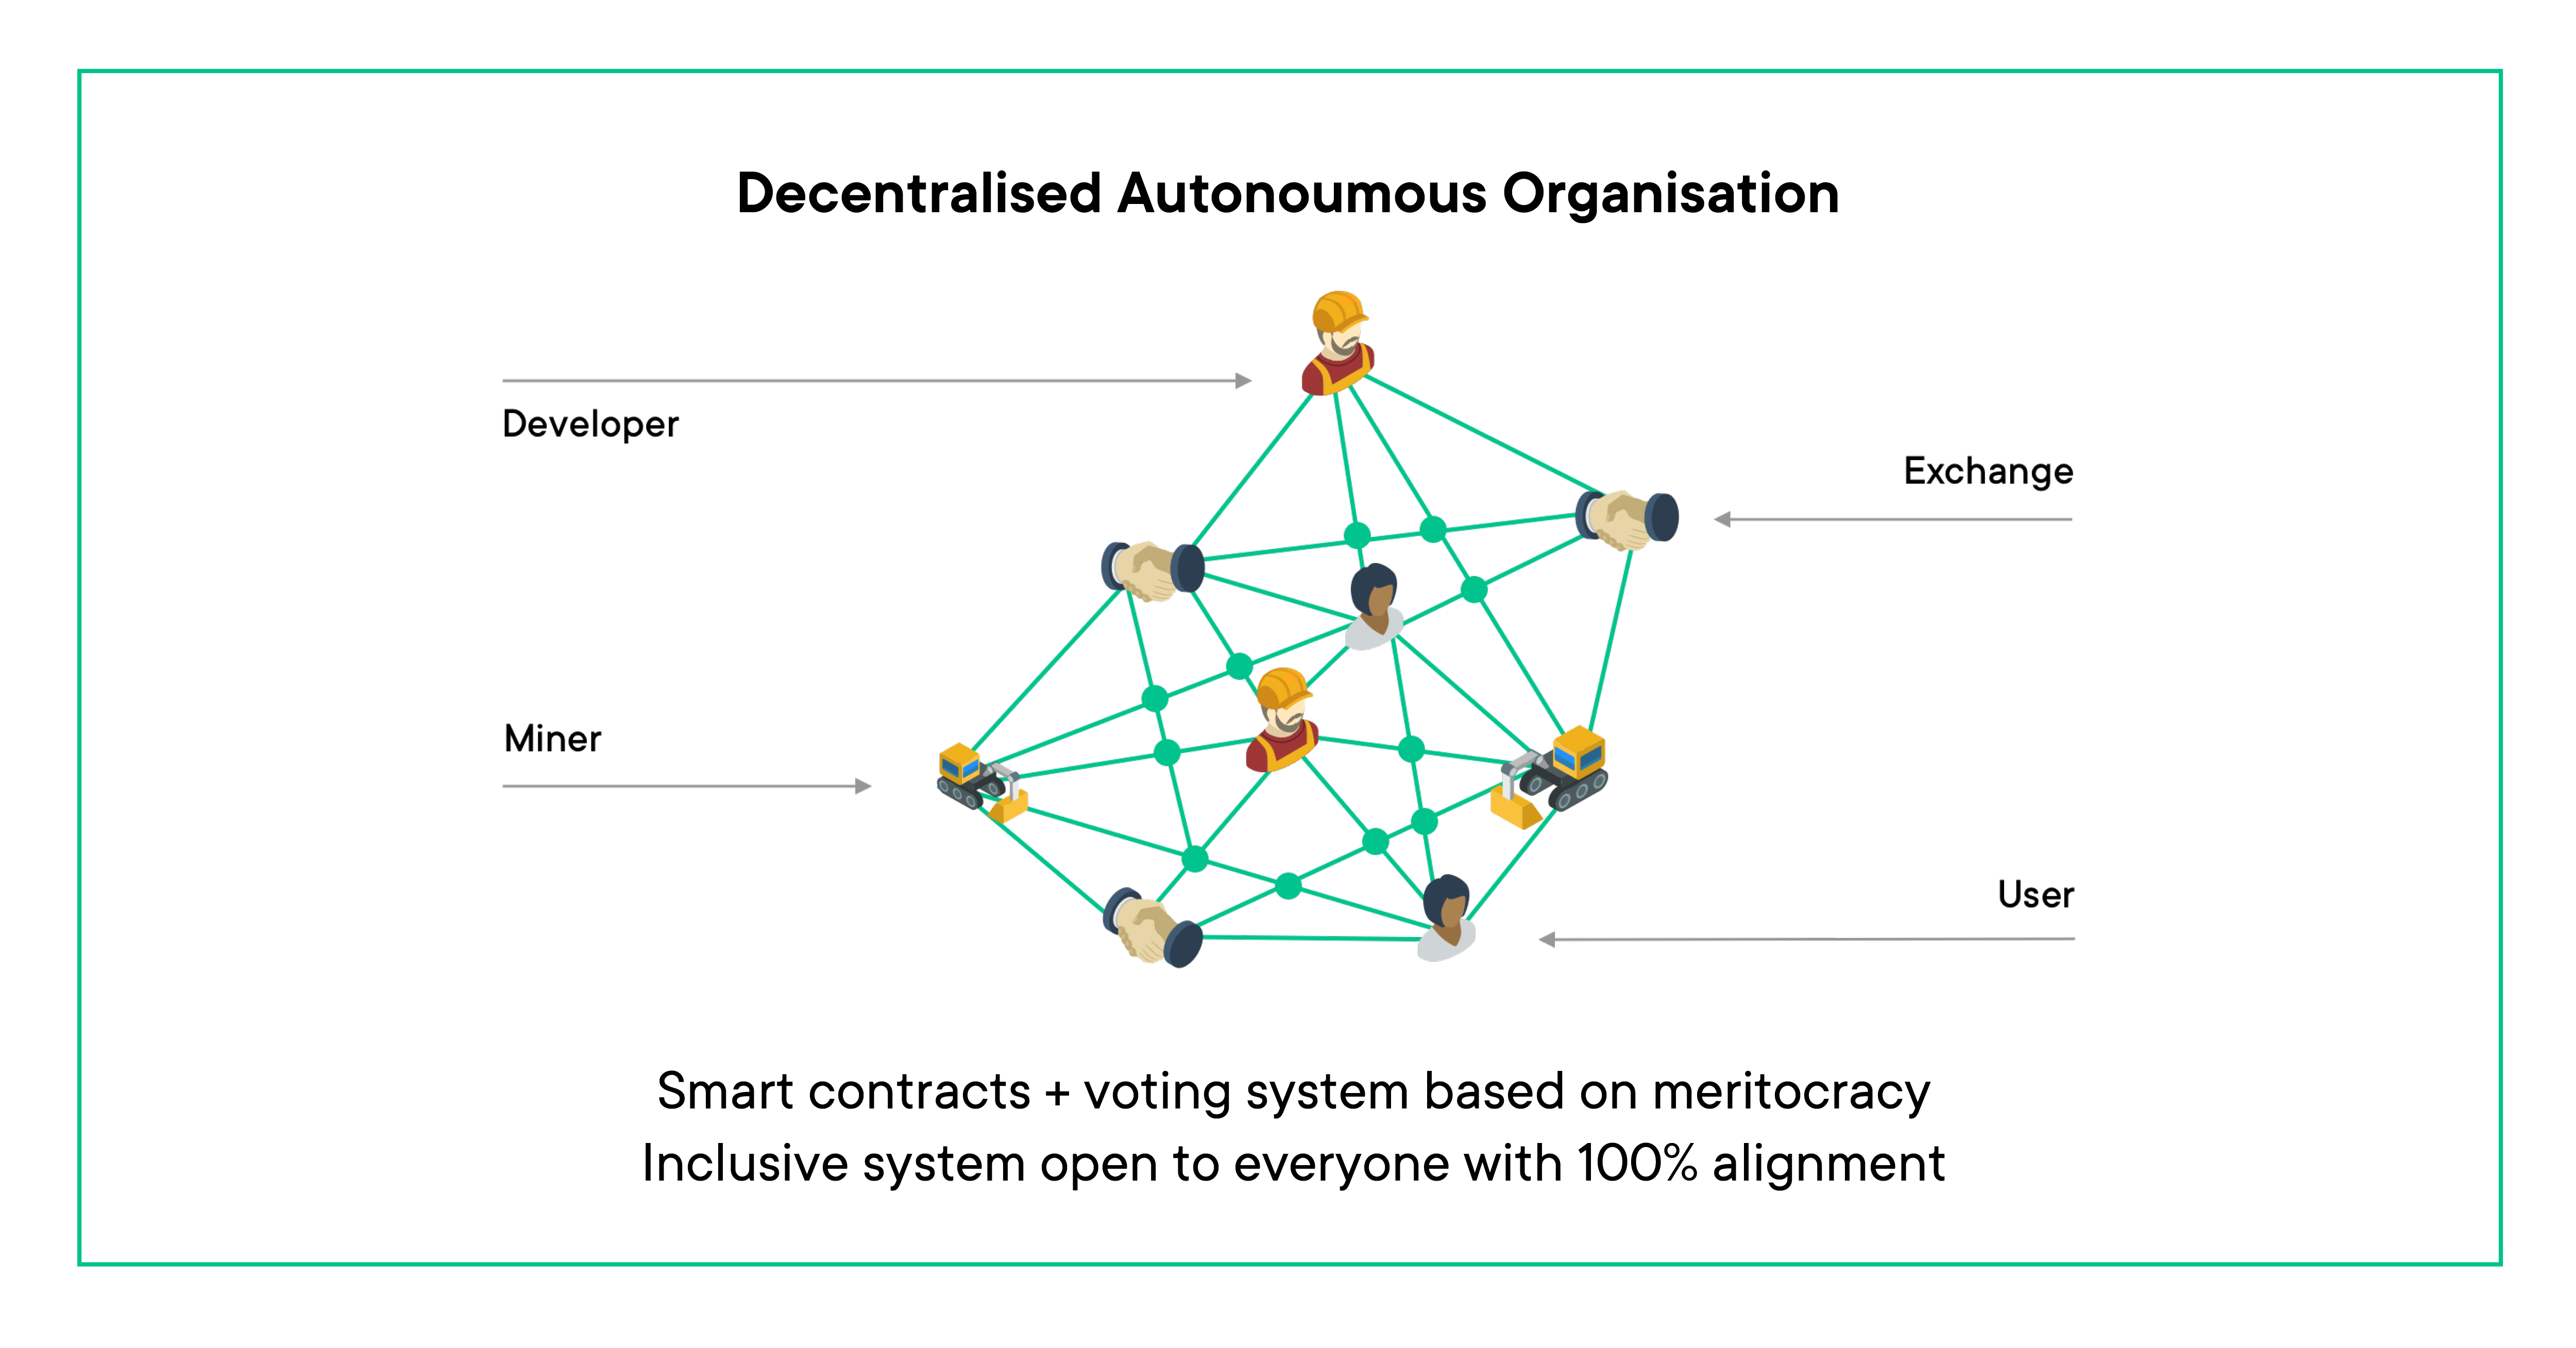 Decentralised Autonoumous Organisation